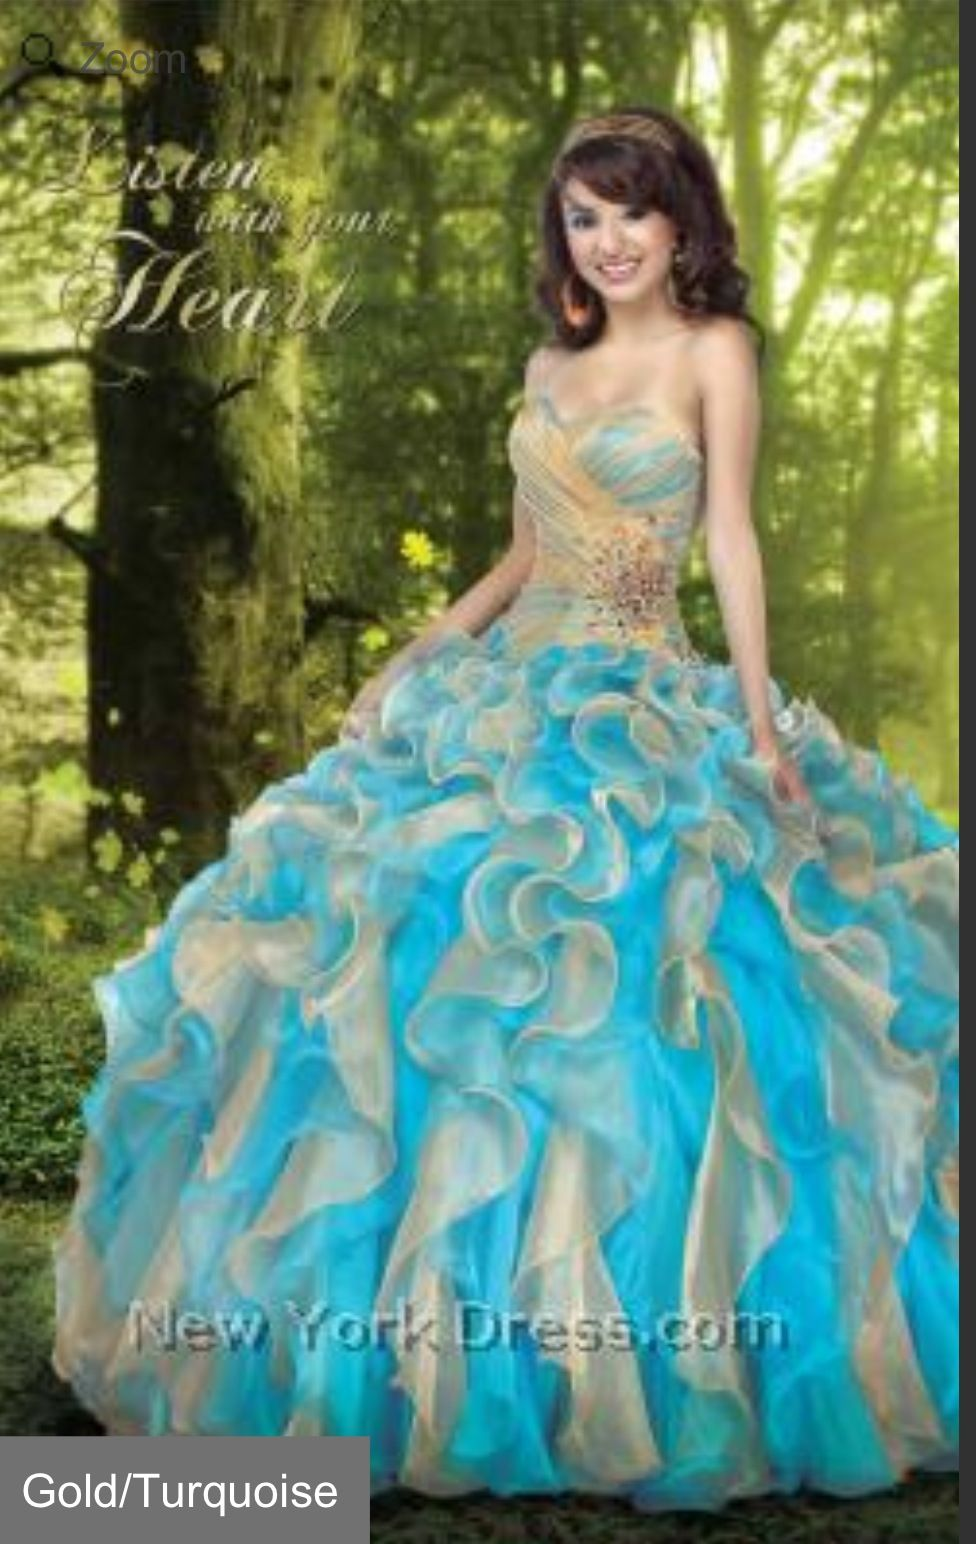 Fancy Prom Dresses King Of Prussia Model - Colorful Wedding Dress ...